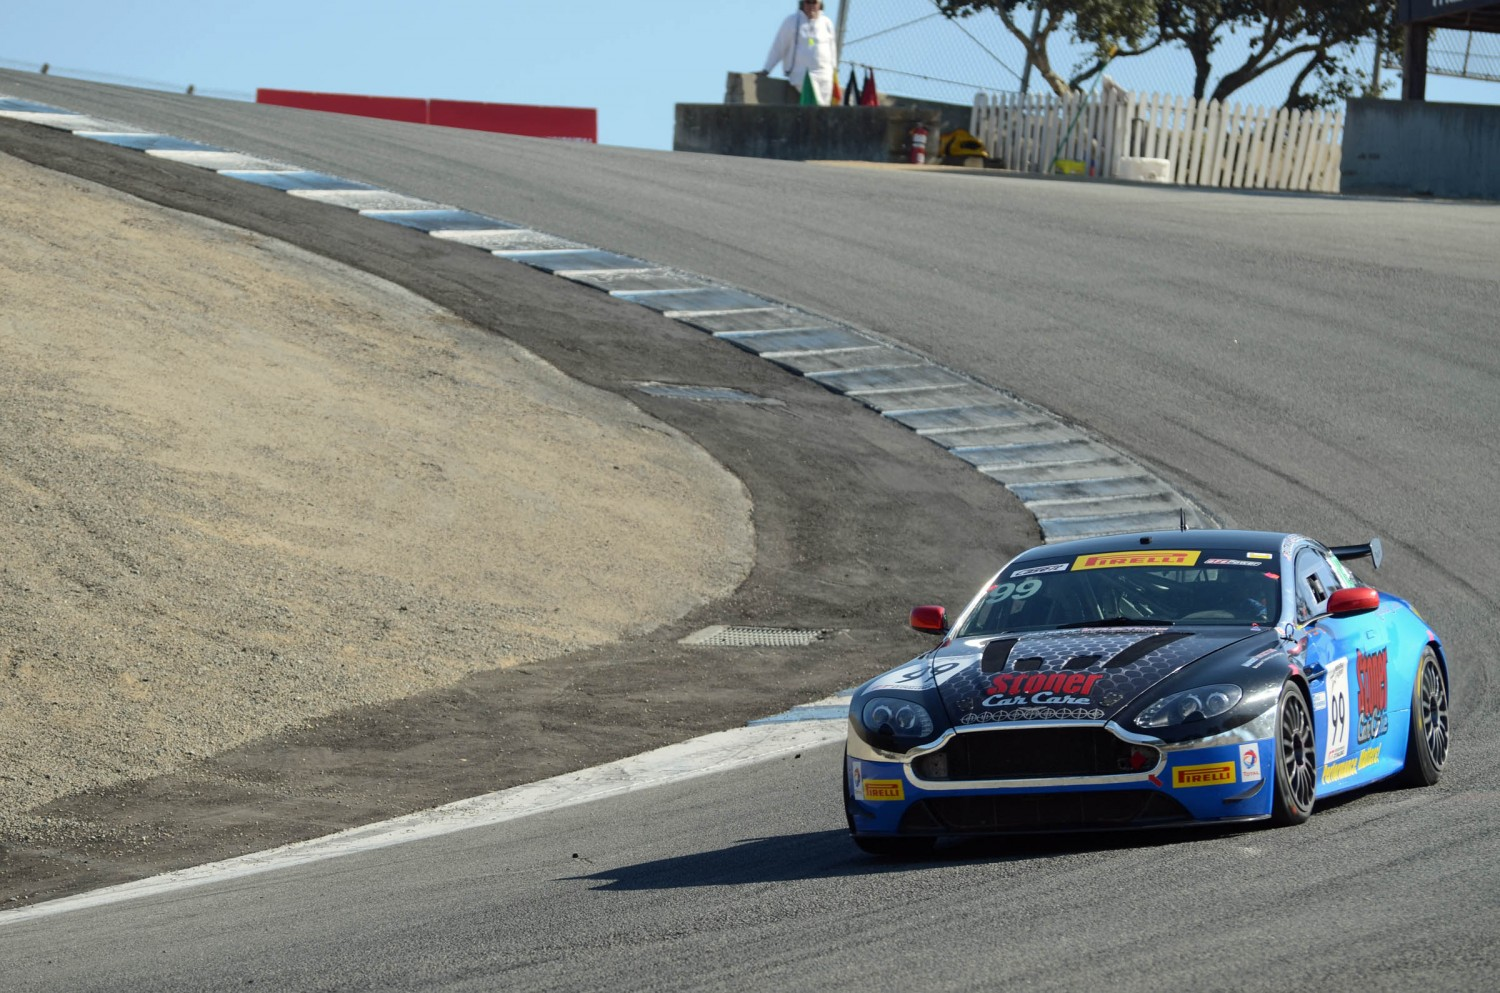 Automatic Racing Returns To The California 8 Hours With Aston Martin Vantage Gt4 Intercontinental Gt Challenge Powered By Pirelli